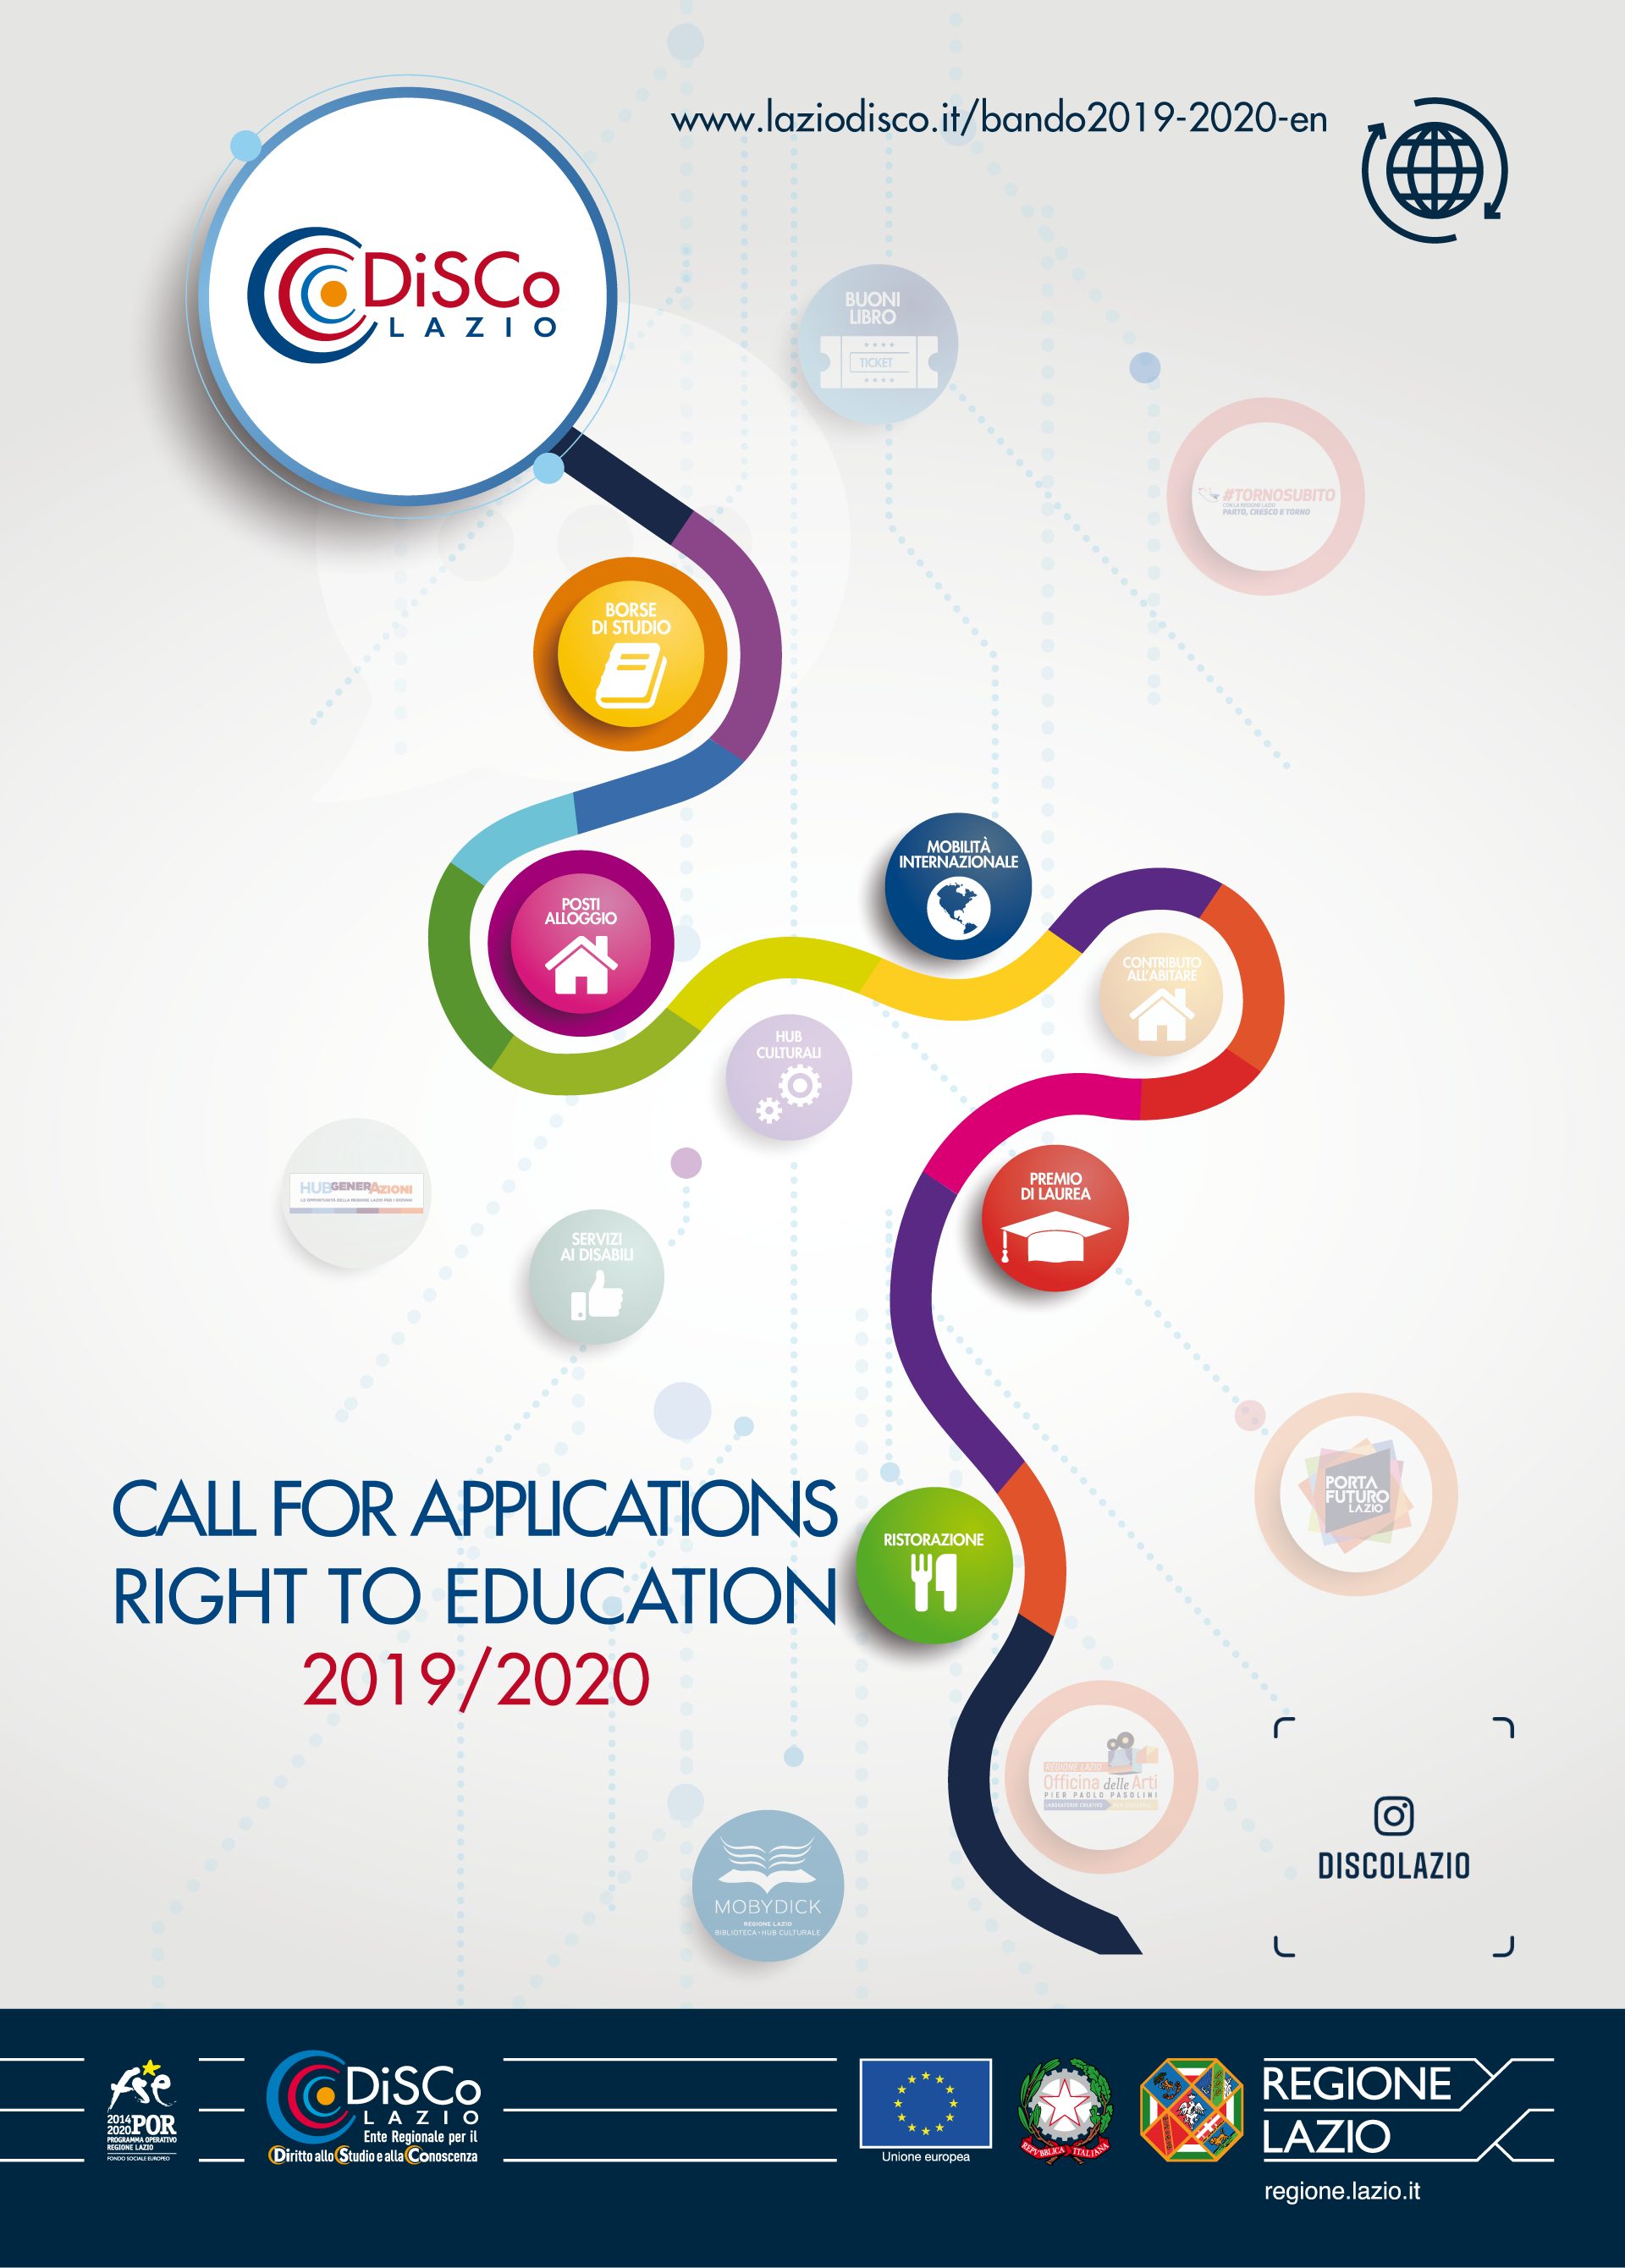 Call for Applications - Right to Education 2019/2020